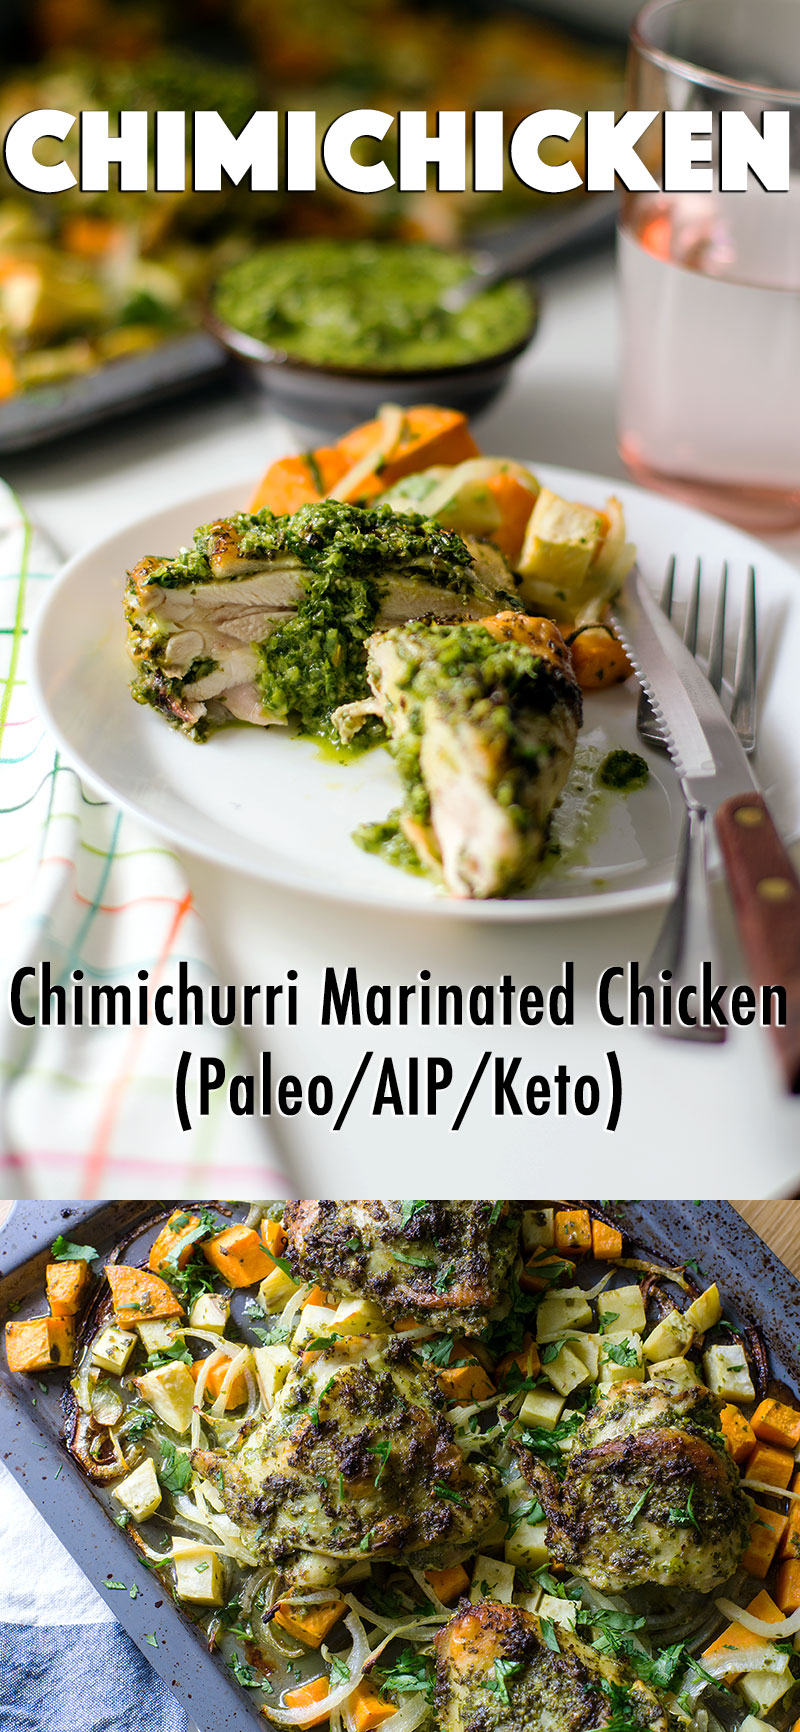 Chimichicken: Chimichurri Marinated Chicken for #Paleo, #AIP, #Keto, #whole30 - easy and full of so much flavor! //   TheCuriousCoconut  .  com